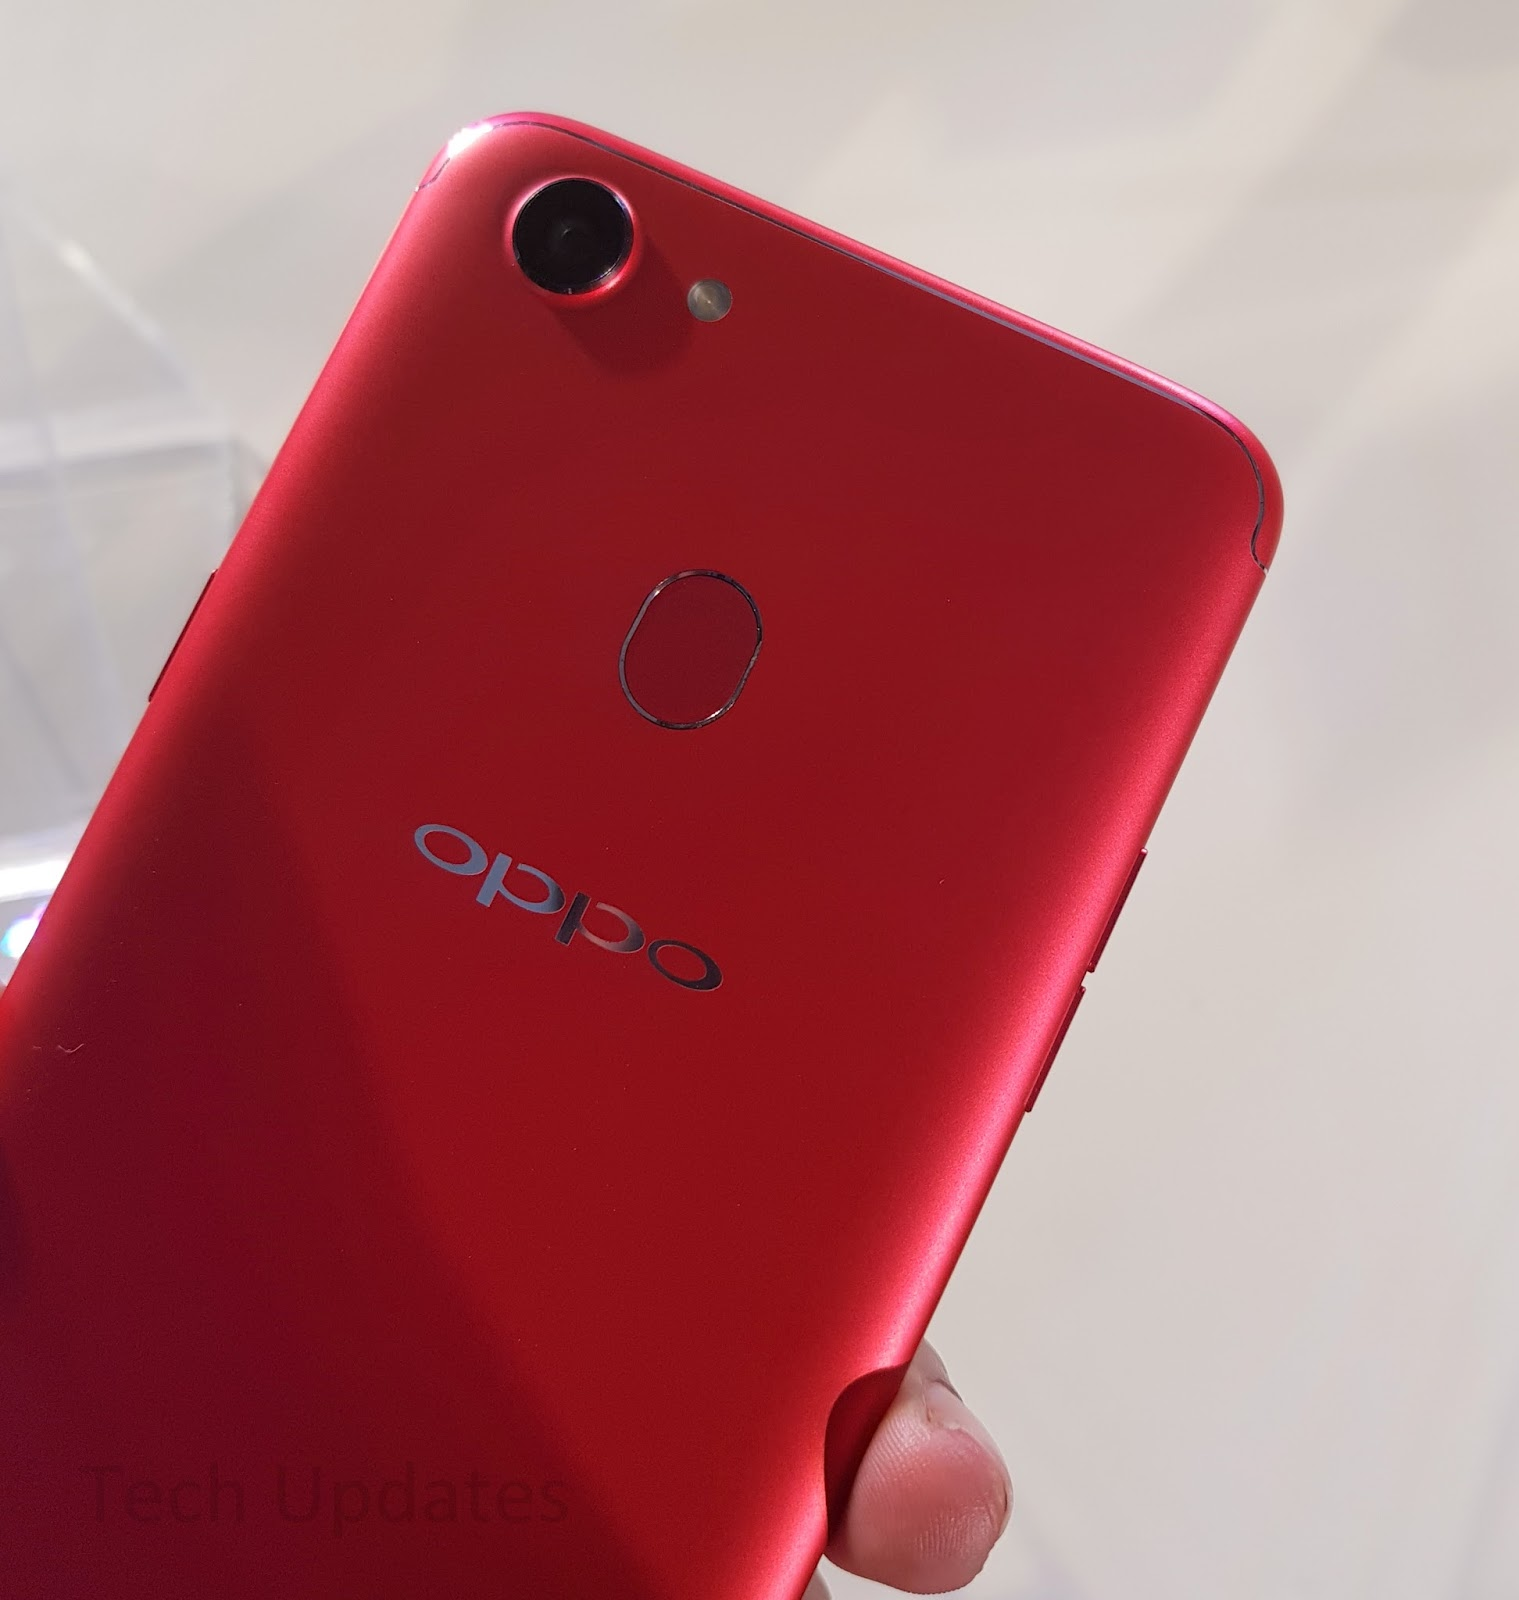 Reasons to buy and not to buy oppo f5 tech updates oppo f5 comes with artificial intelligence technology that self learns and recognizes the differences between skin tones and color age the gender of stopboris Image collections